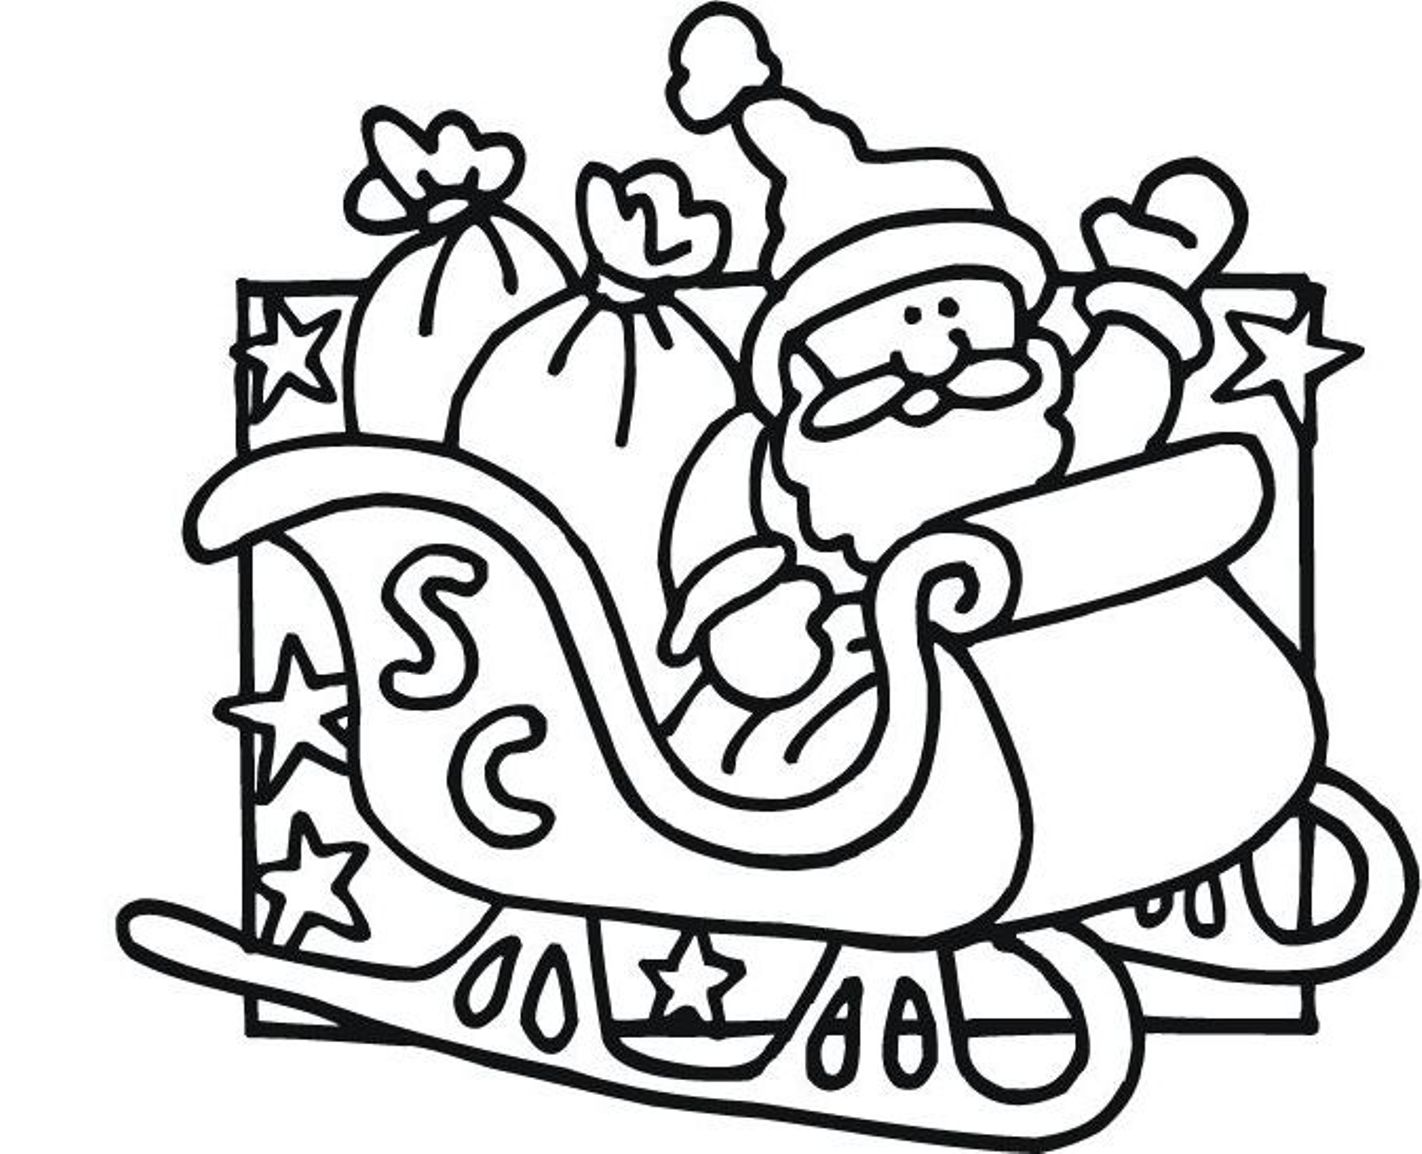 403 forbidden for Santa with reindeer coloring pages